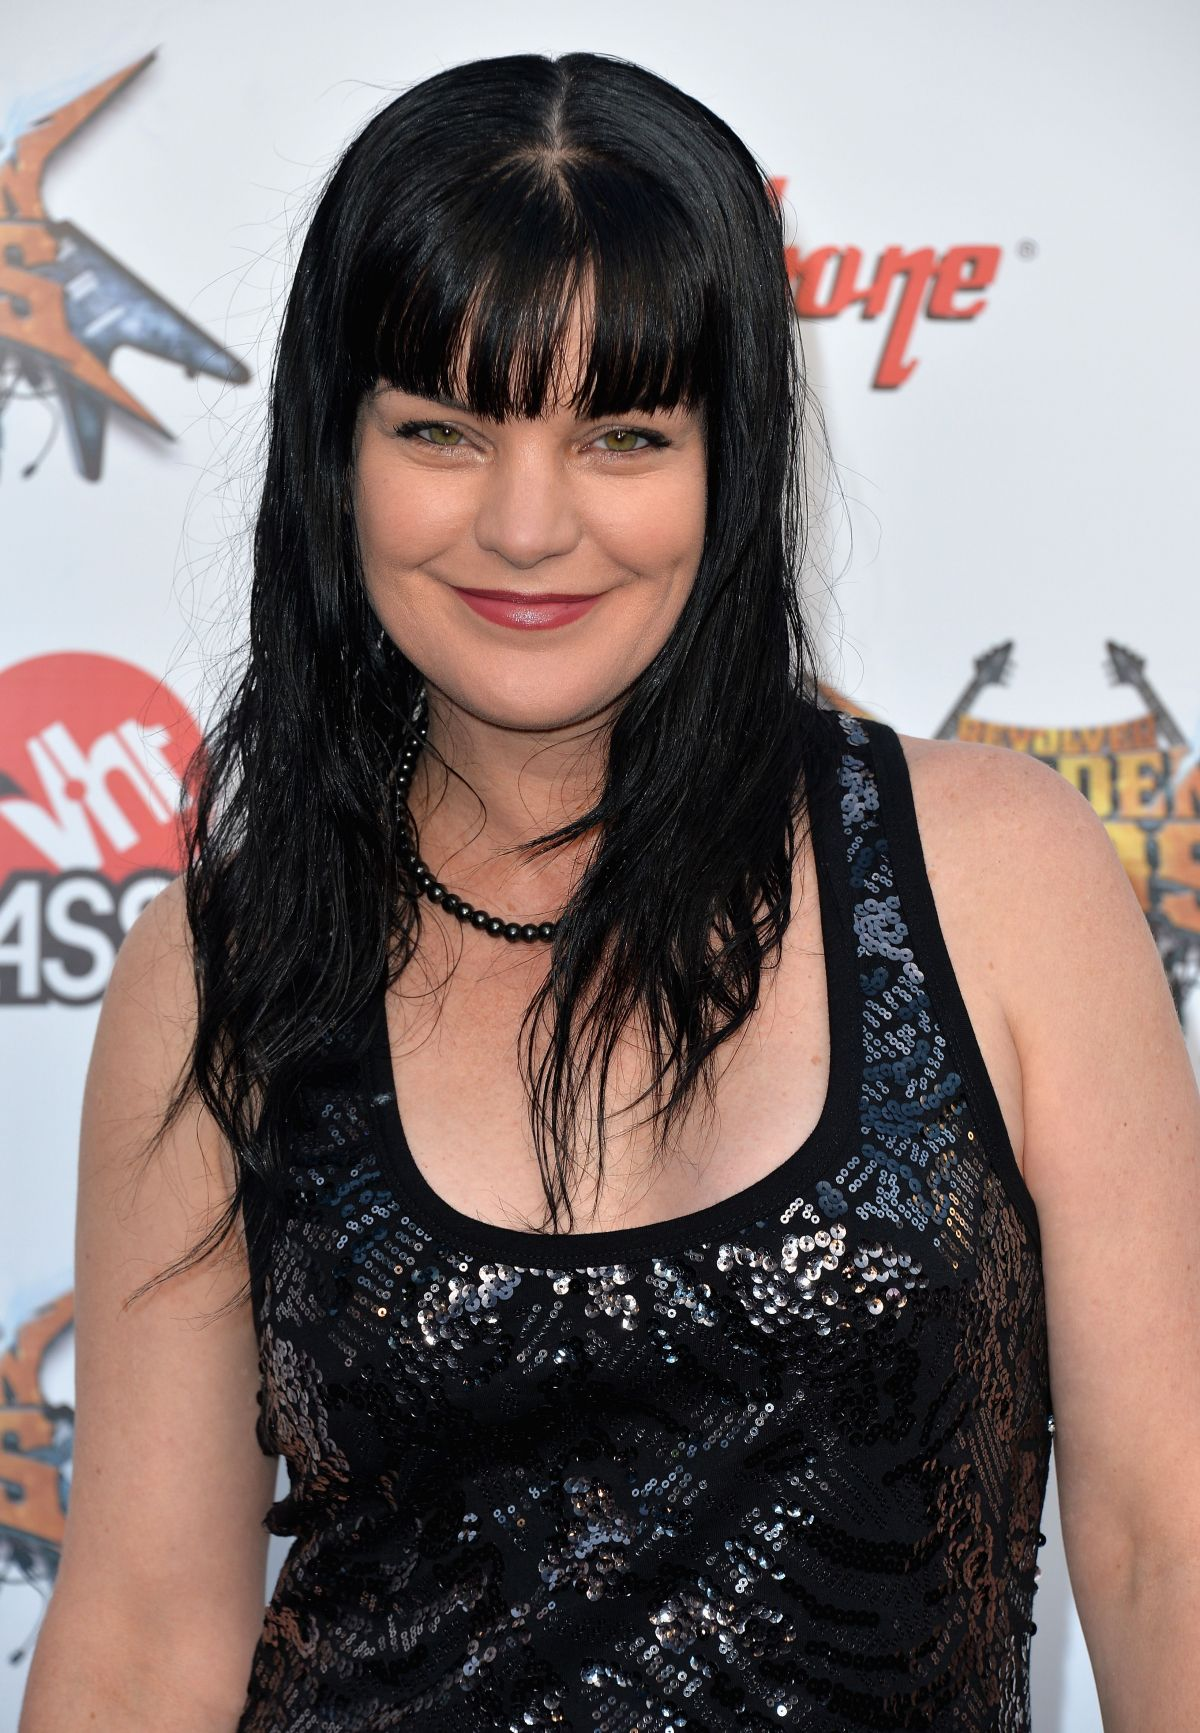 Happy Birthday Irene Cara together with 130774735966 also Pauley Perrette At 6th Annual Revolver Golden Gods Award Show besides Vivien Leigh as well Pauley Perrette 57th Annual Grammy Awards. on oscar award categories list